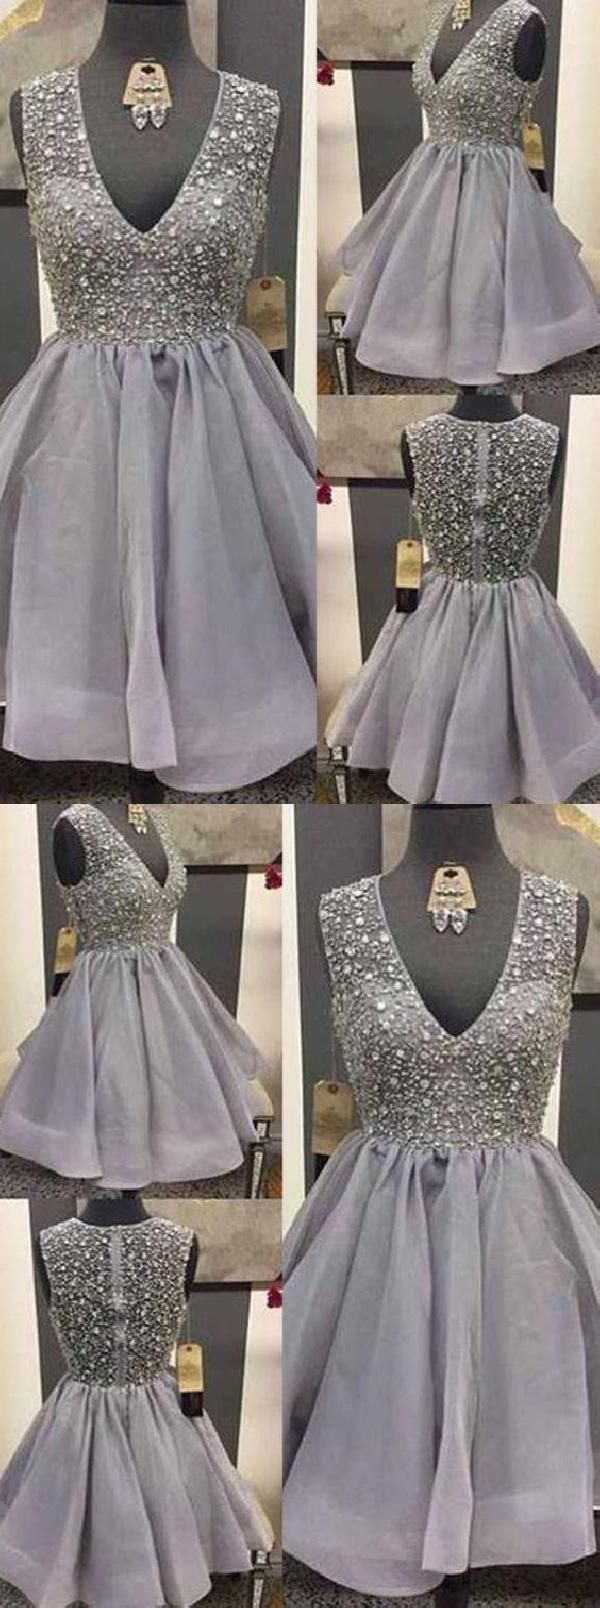 Soft prom dresses for girls prom dresses short in homecoming